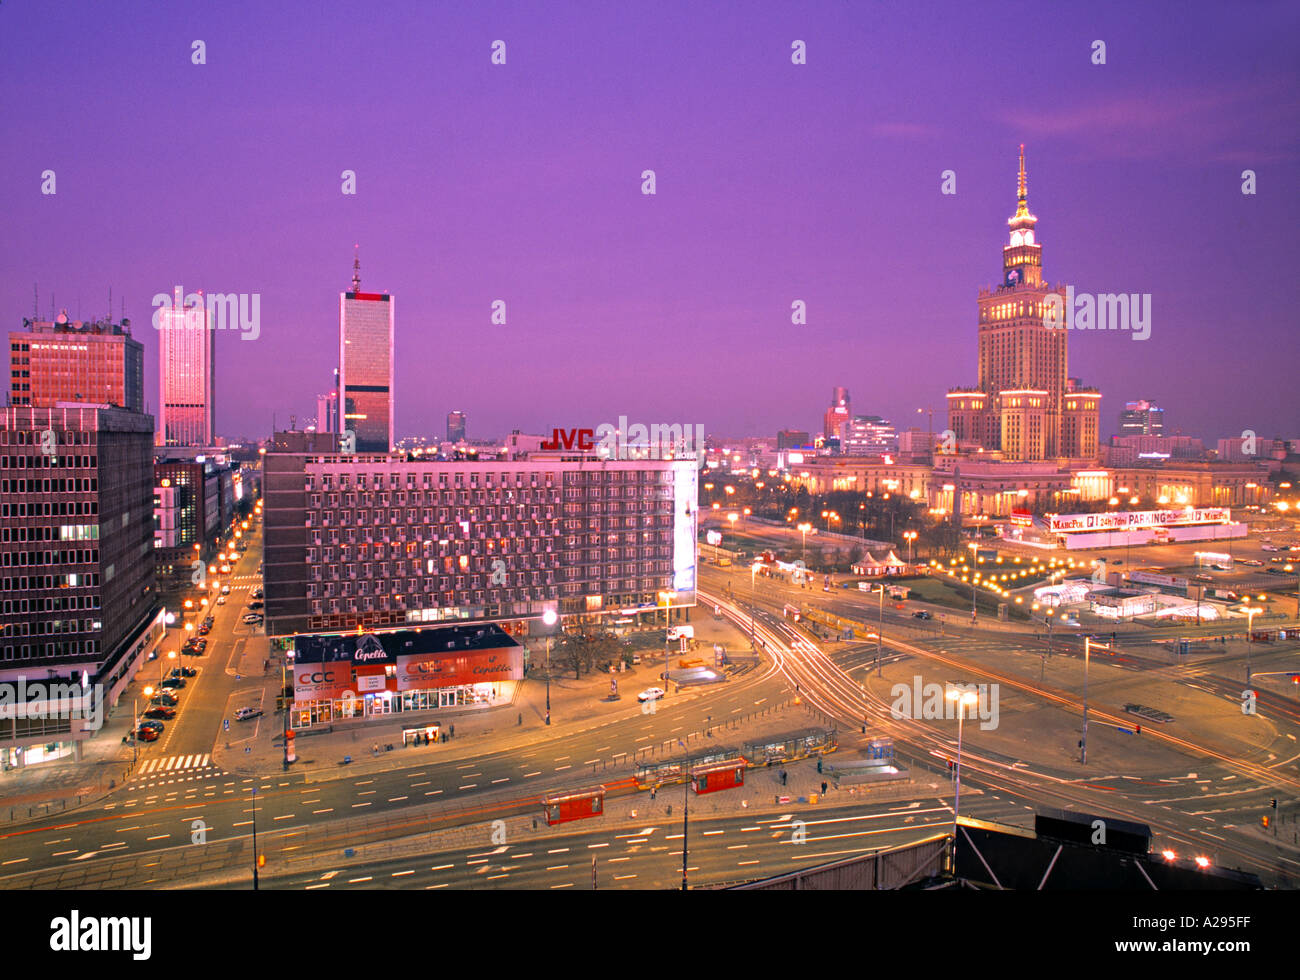 Palace of Culture, Warsaw, Poland Stock Photo